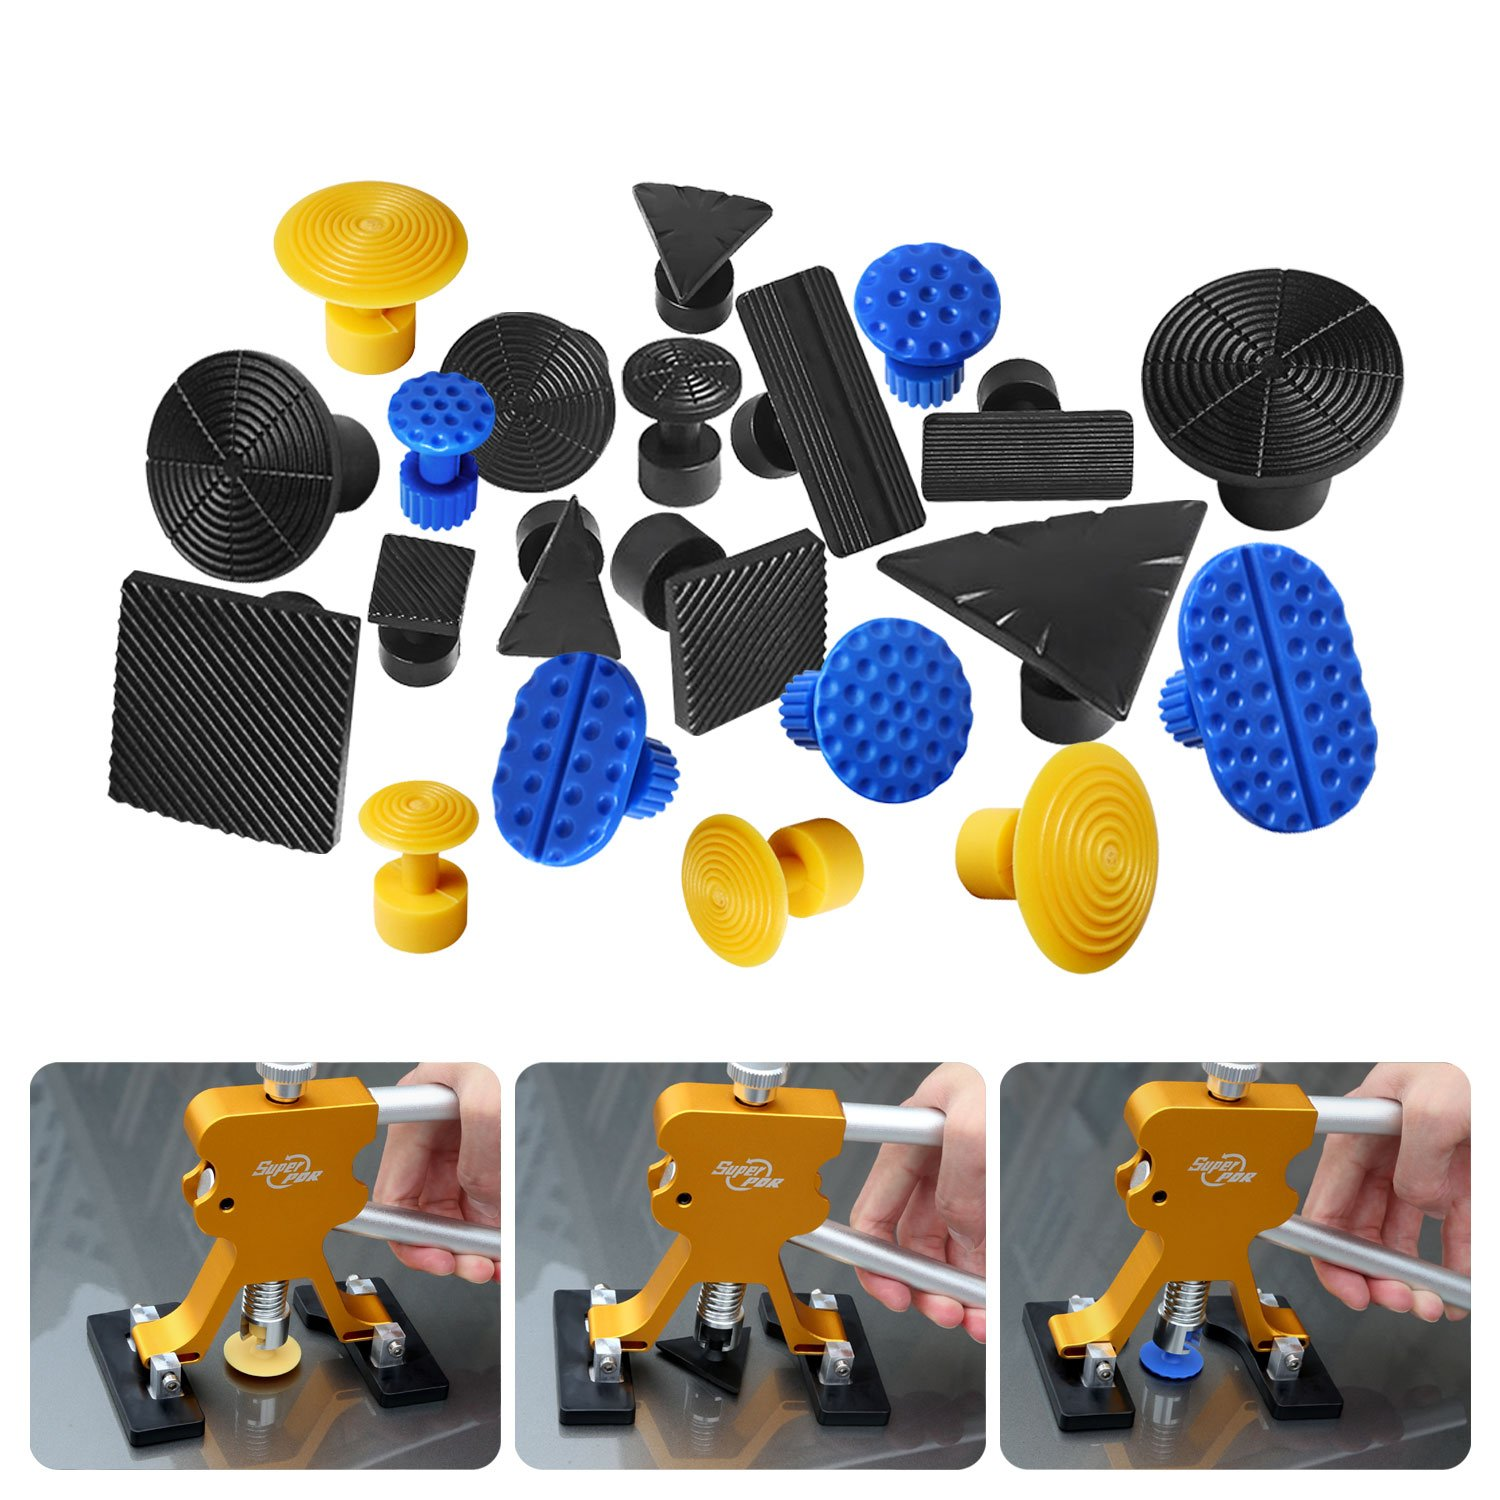 Super PDR 40 Pcs PDR Kits Auto Dent Puller Car Body Dent Repair Removal Tools with Tool Bag by Super PDR (Image #3)